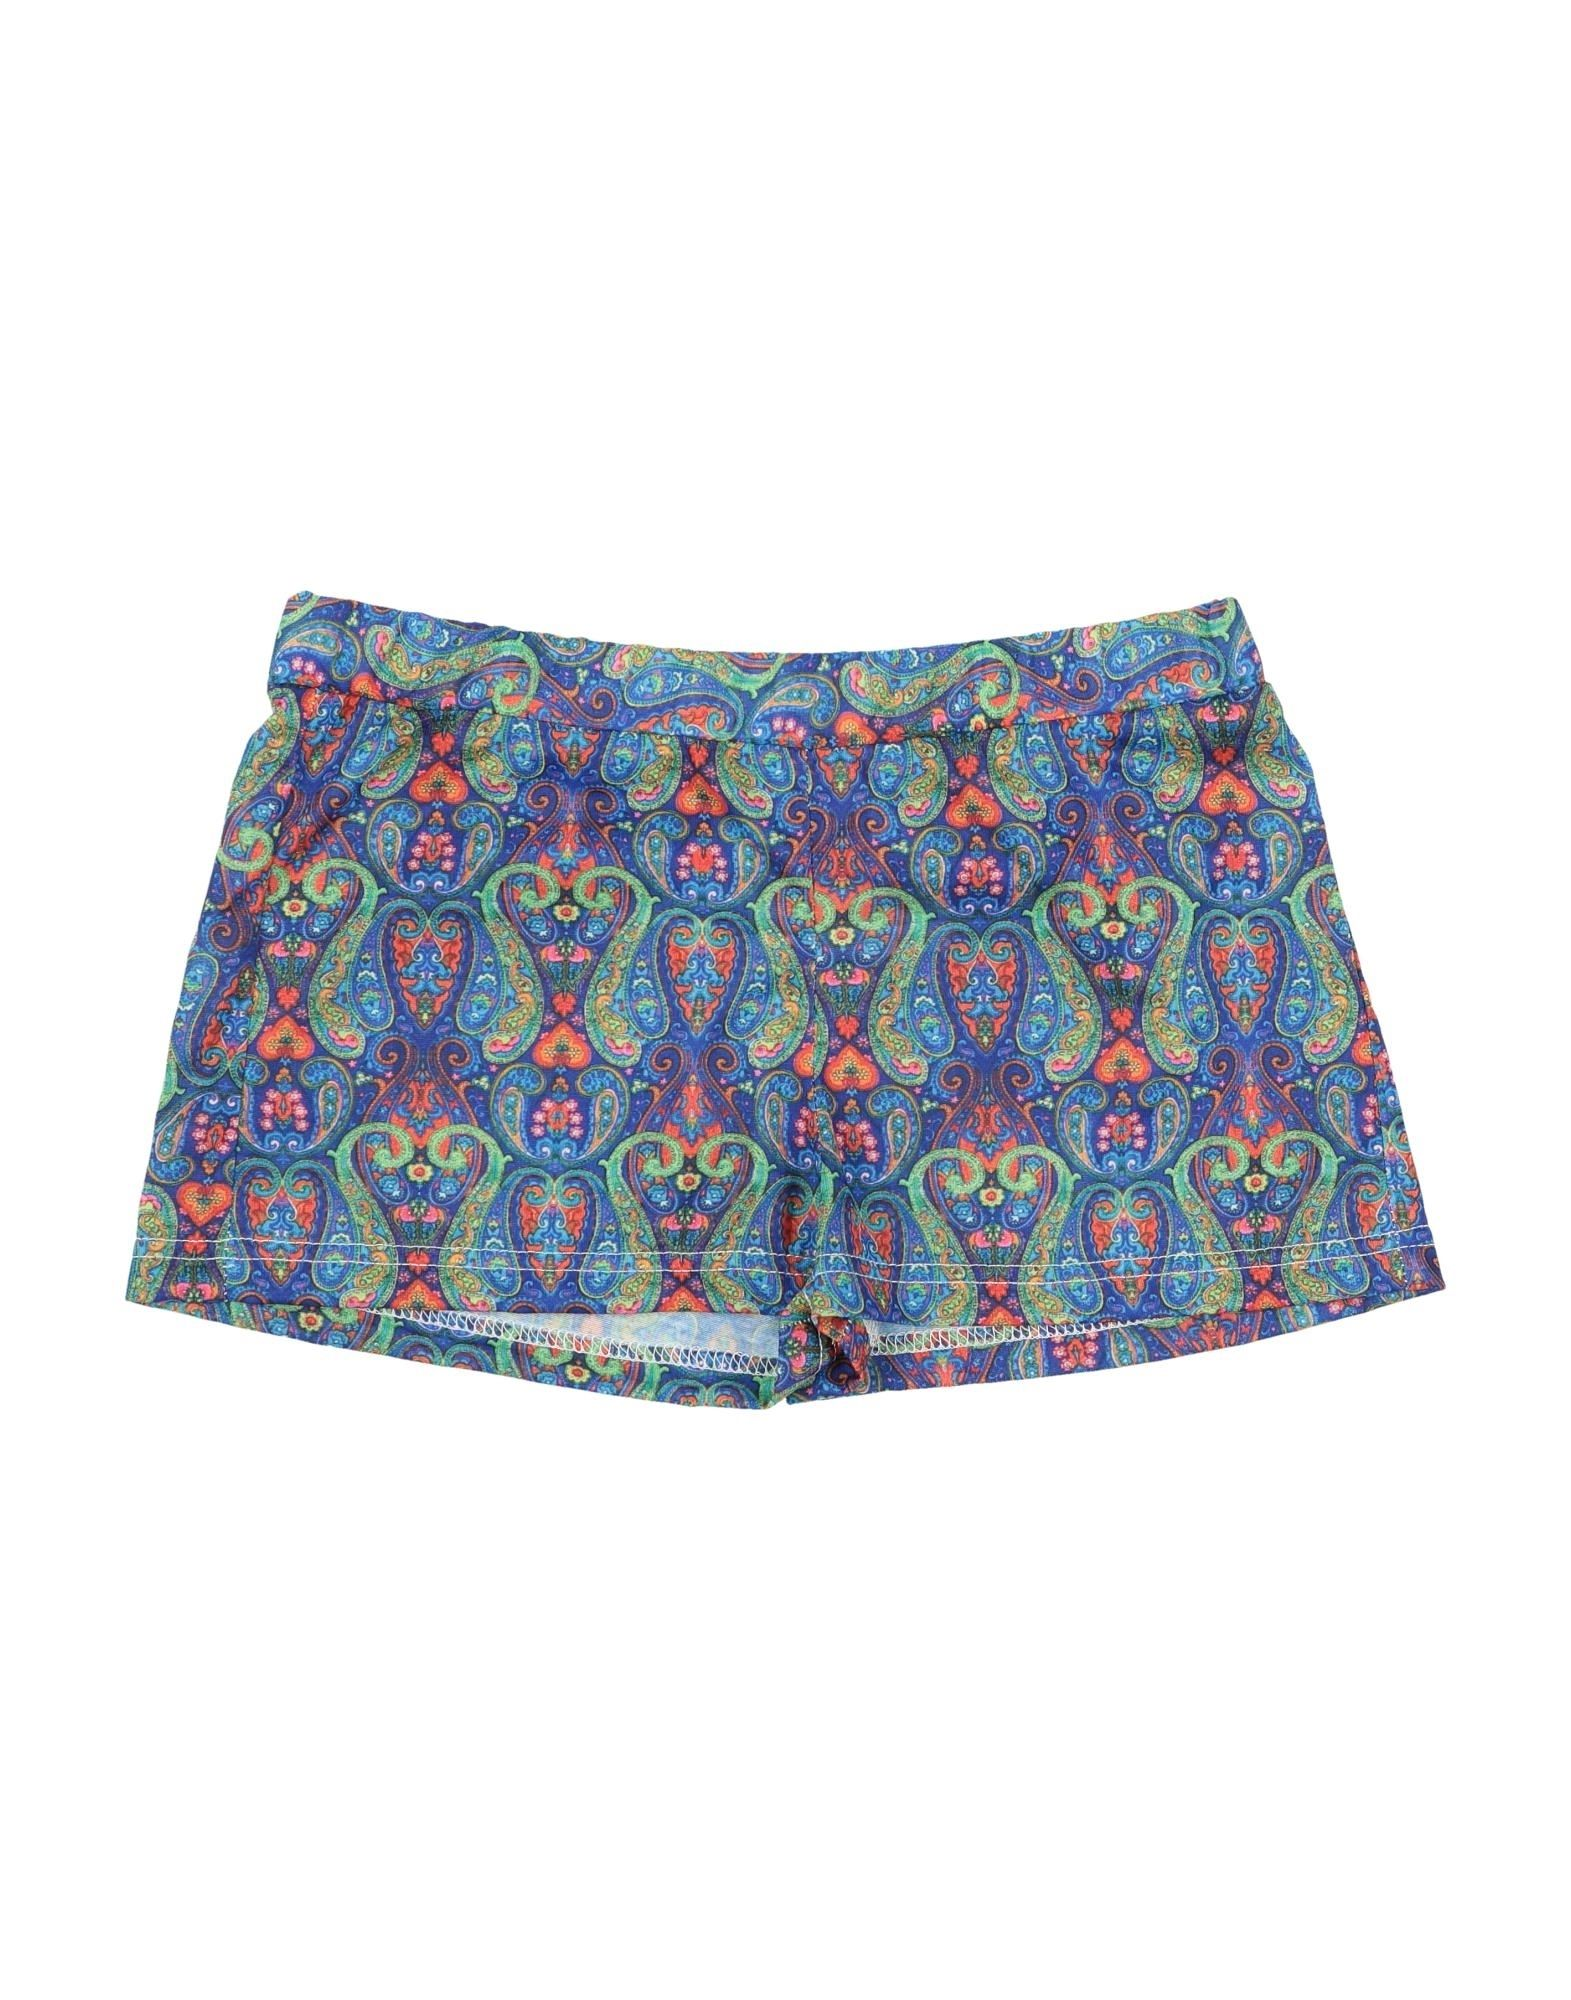 4giveness Kids' Shorts In Blue